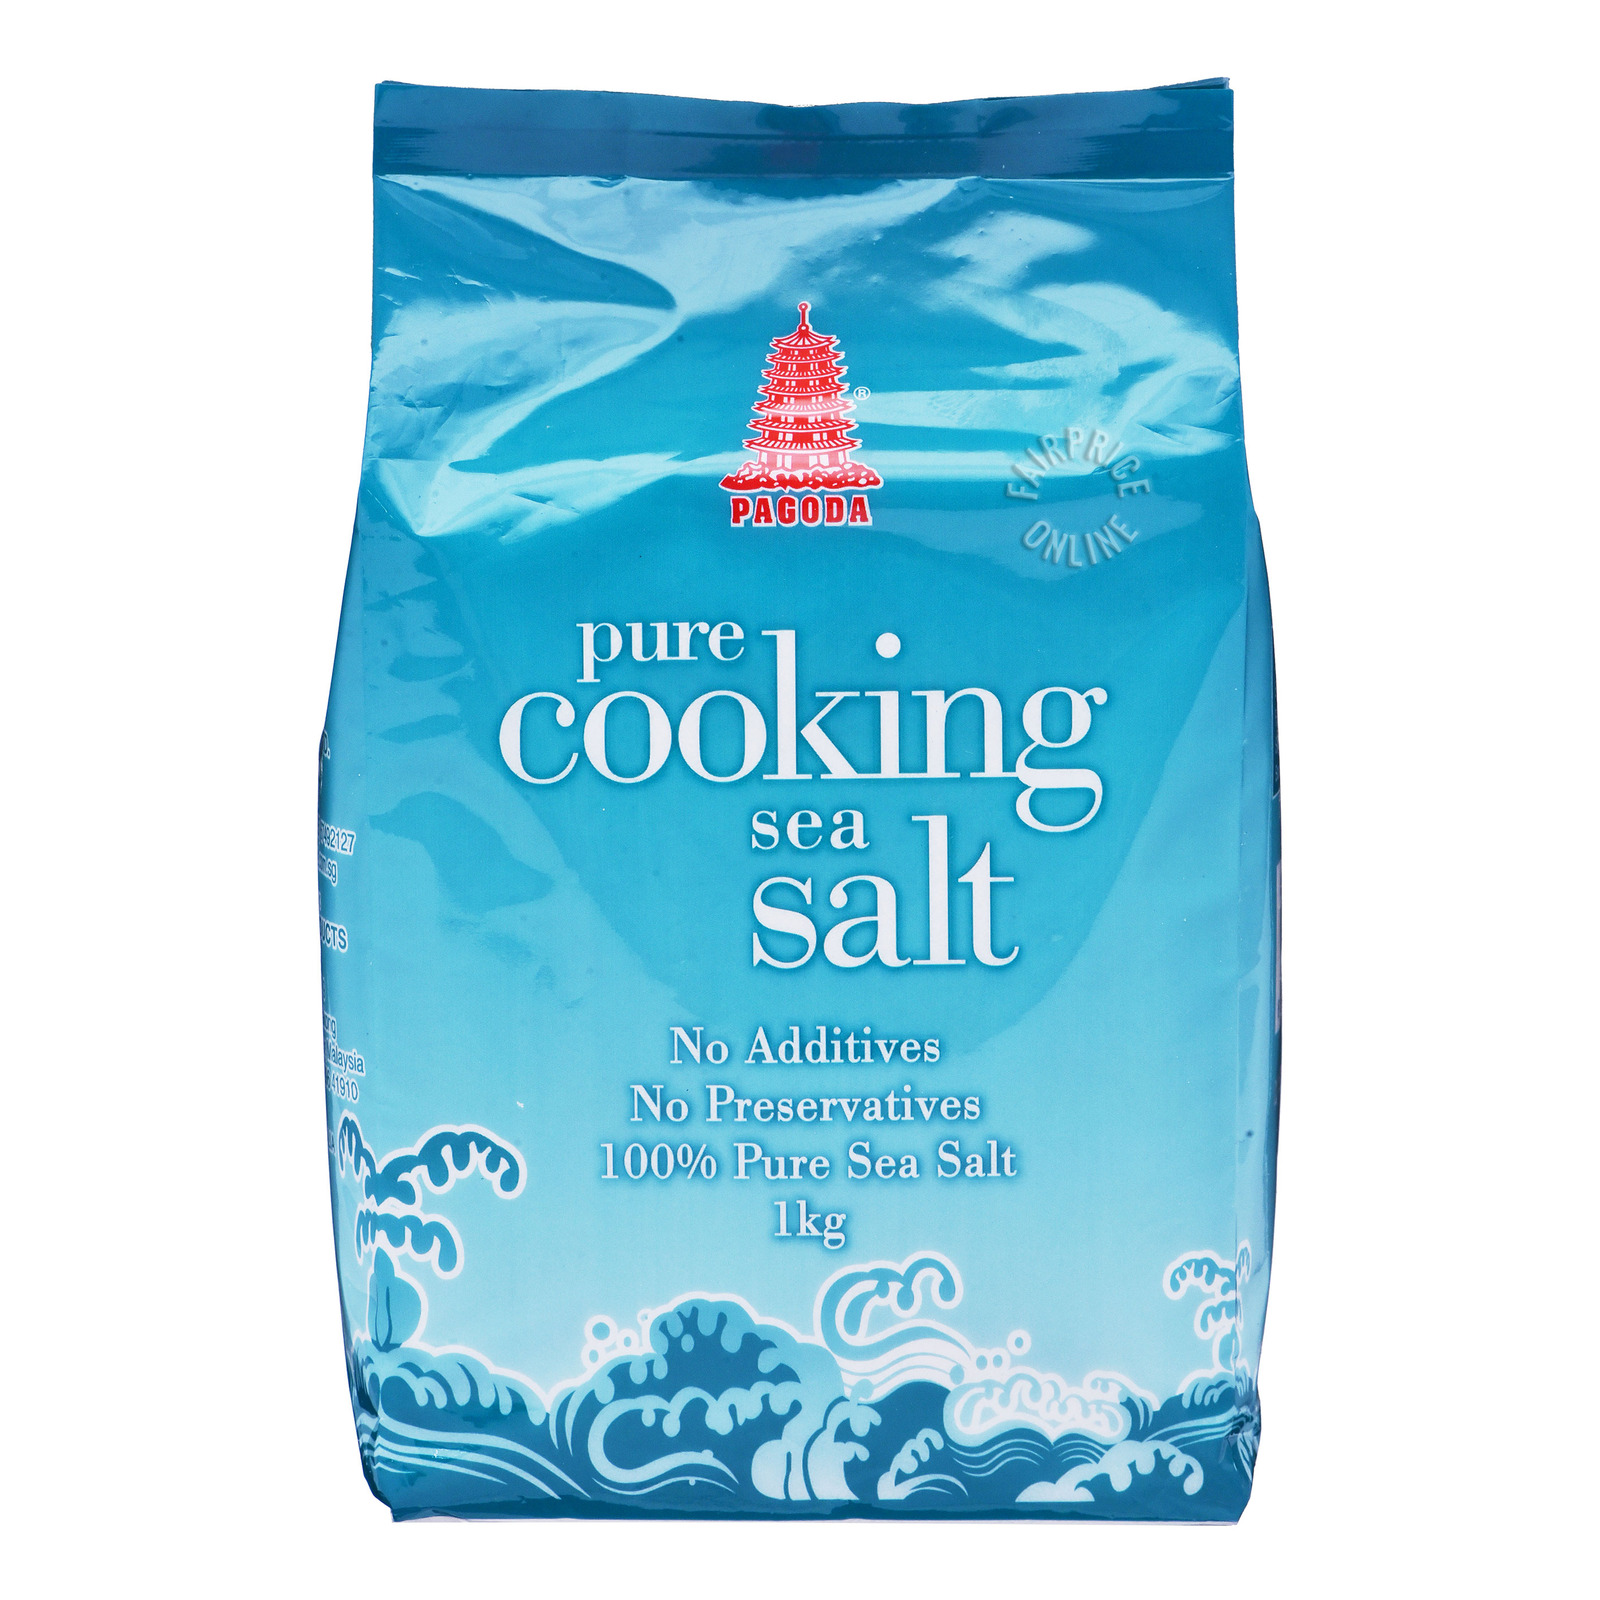 Pagoda Pure Cooking Sea Salt